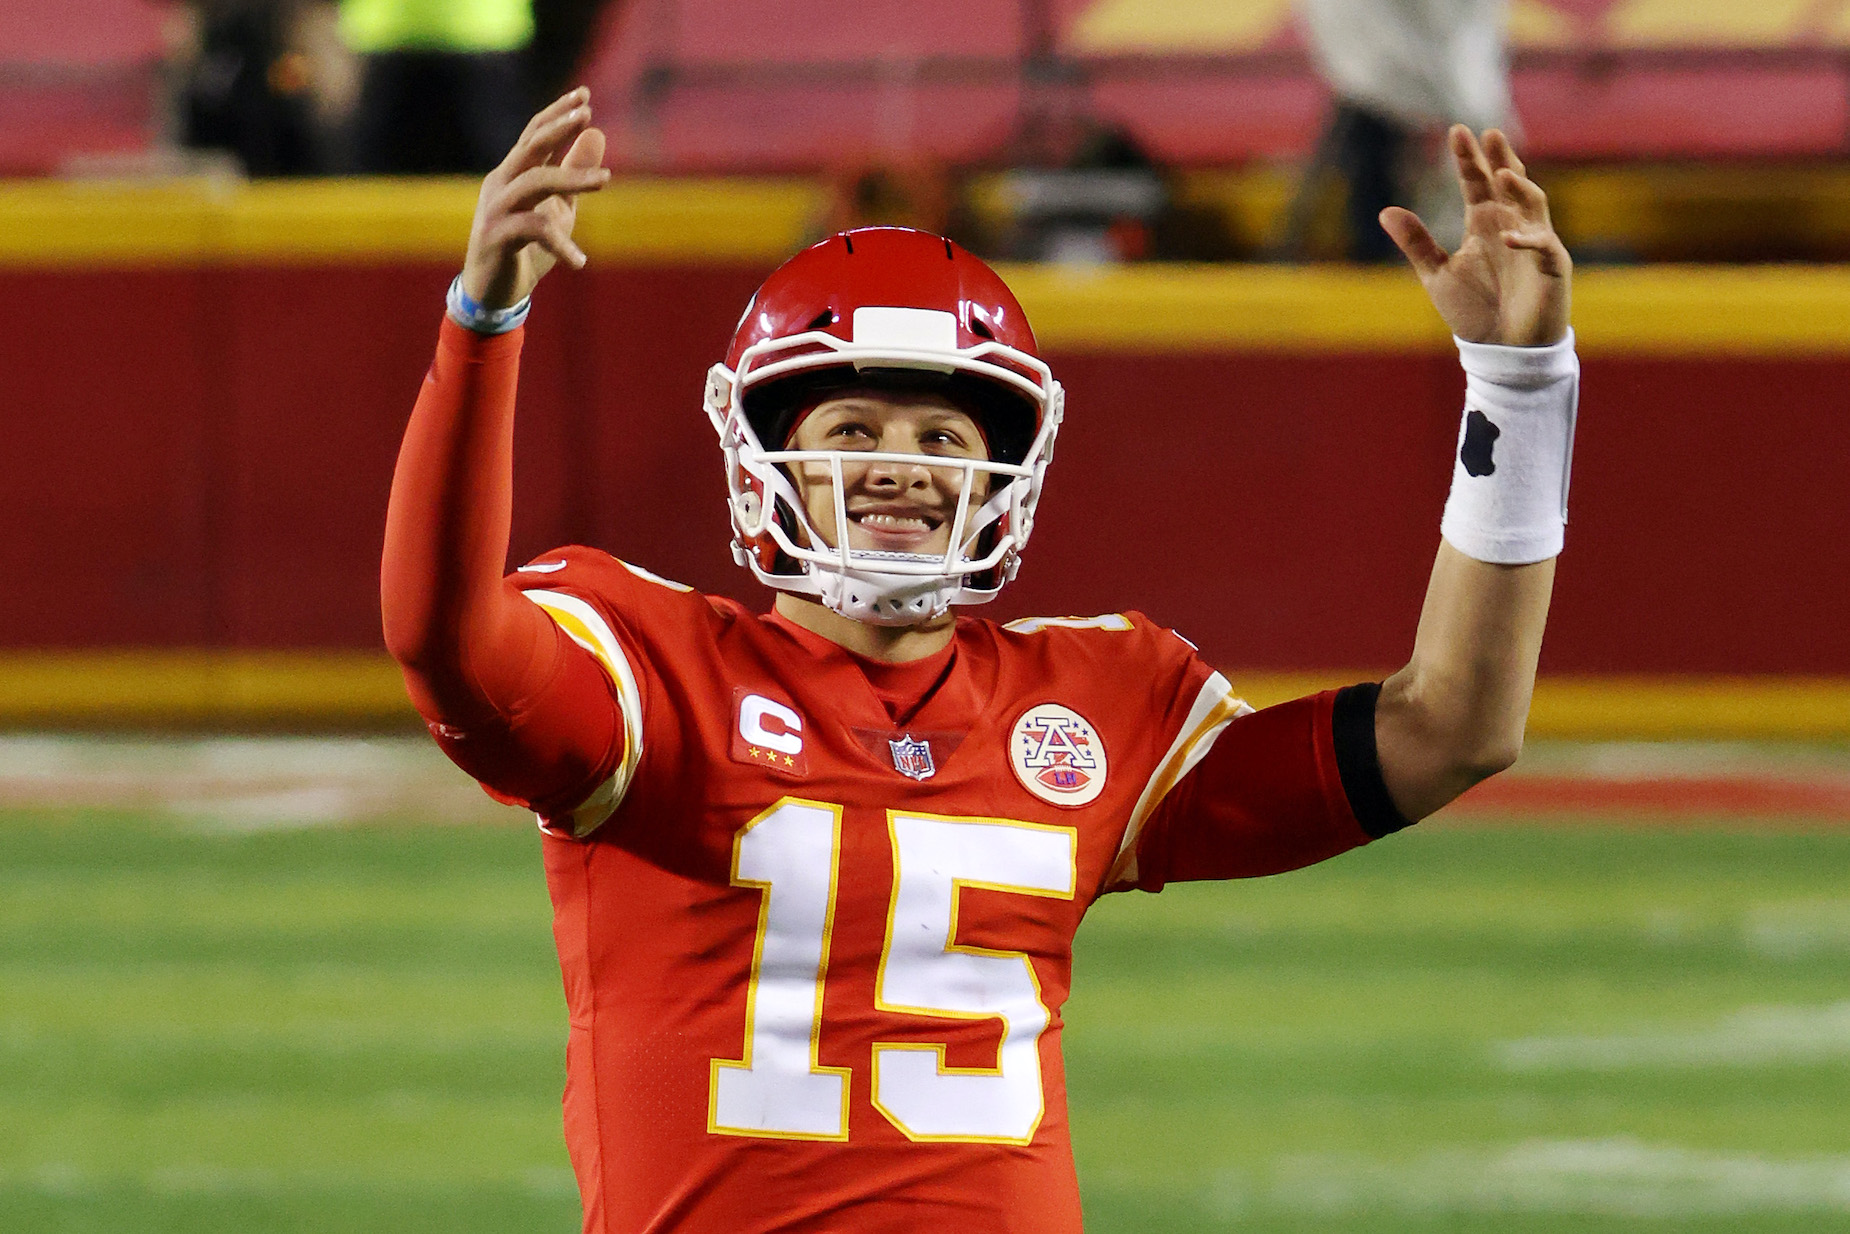 Patrick Mahomes might have found himself ineligible for the Super Bowl, if not for the Kansas City Chiefs' quick thinking.